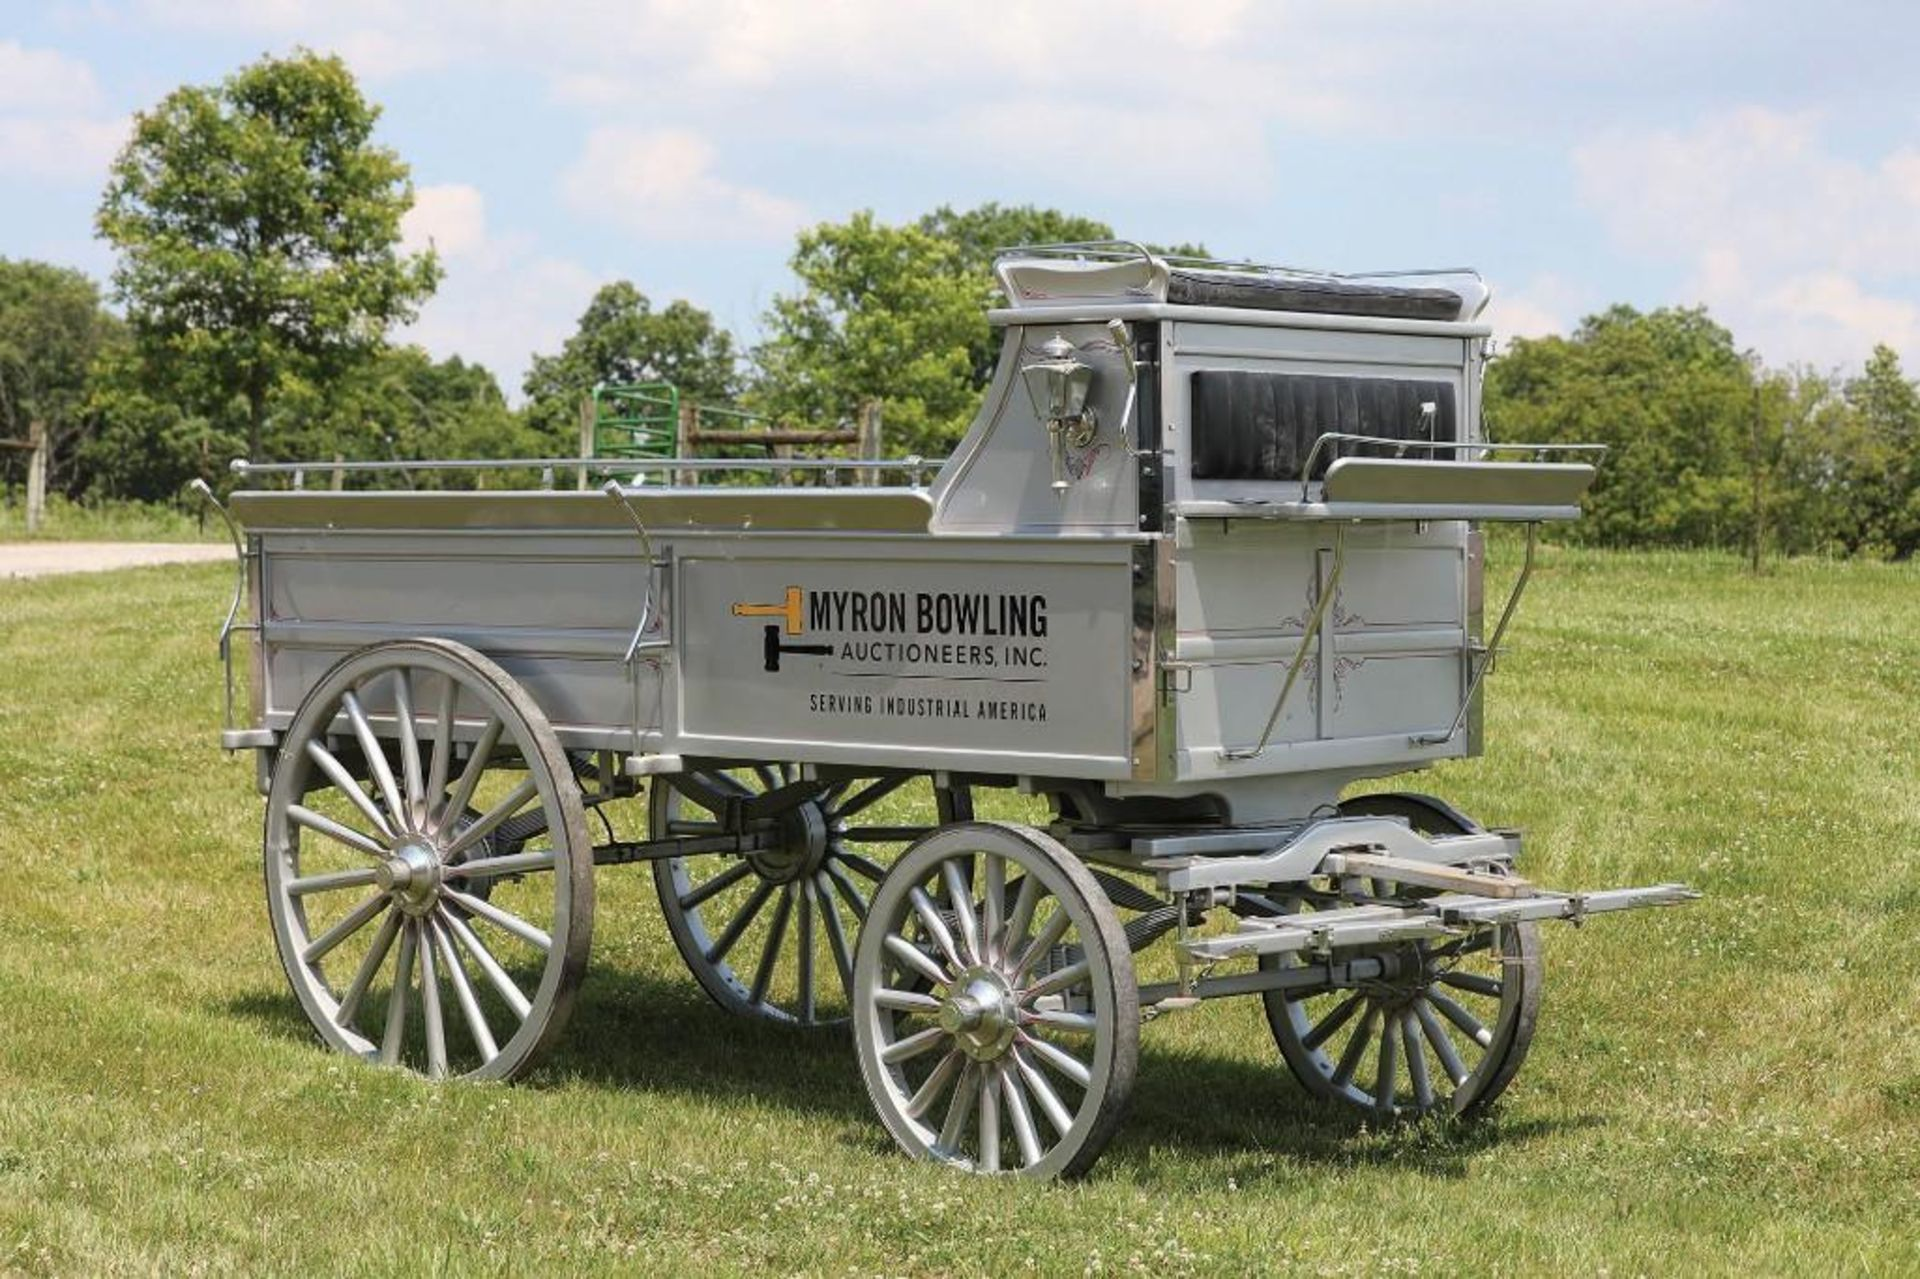 ROBERTS 5th Wheel Hitch Wagon, Setup for 6-Up - Image 2 of 2